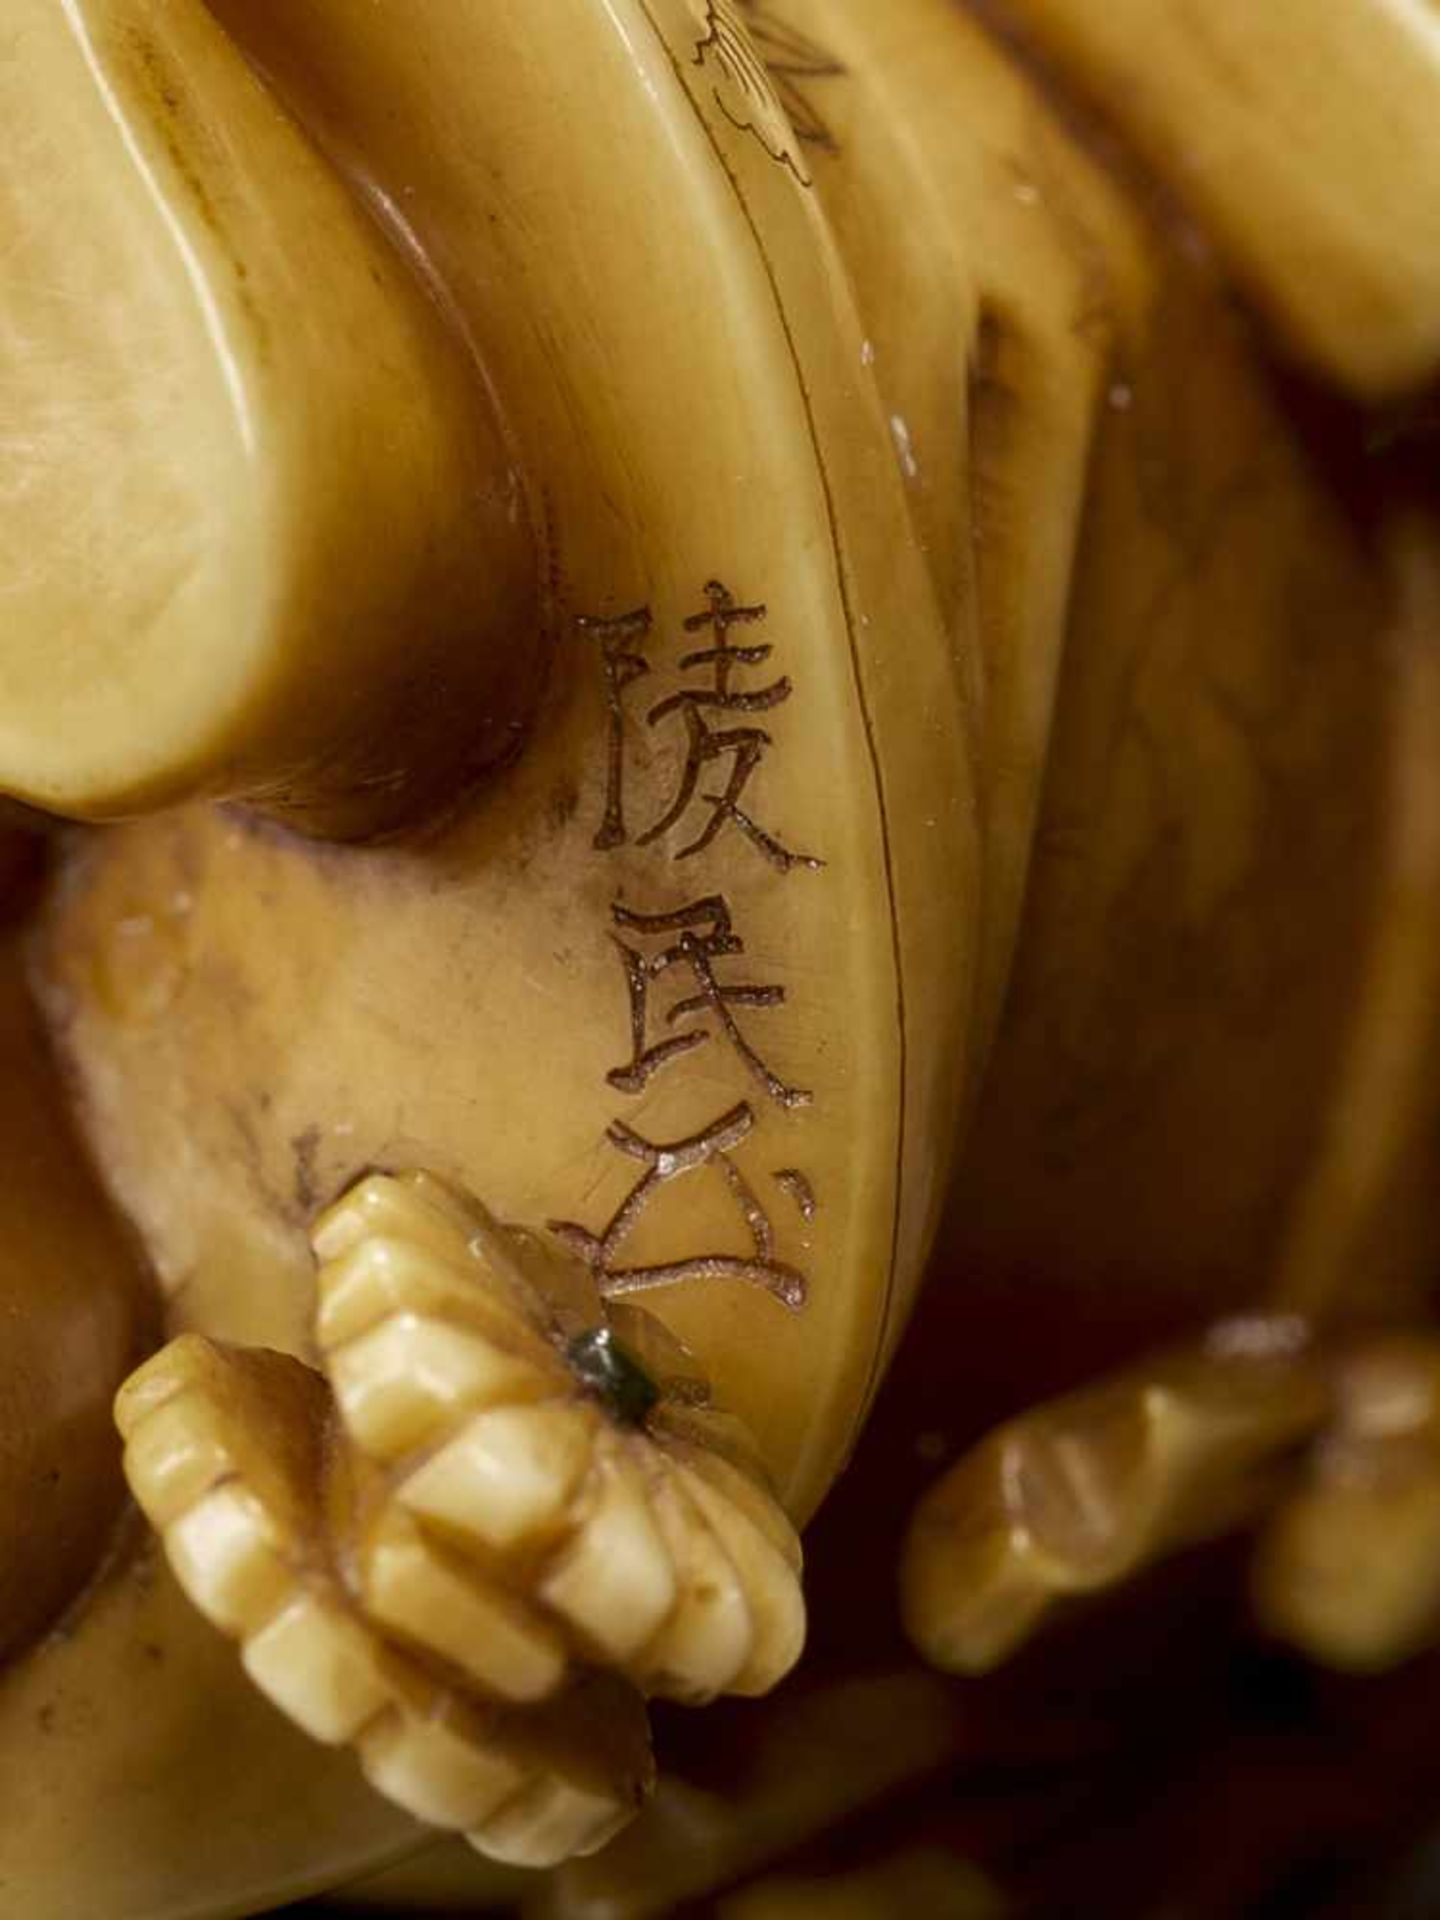 RYOMIN: A VERY FINE IVORY NETSUKE OF A BOY WITH HOBBY HORSE By Ono Ryomin, signed Ryomin with - Image 9 of 11